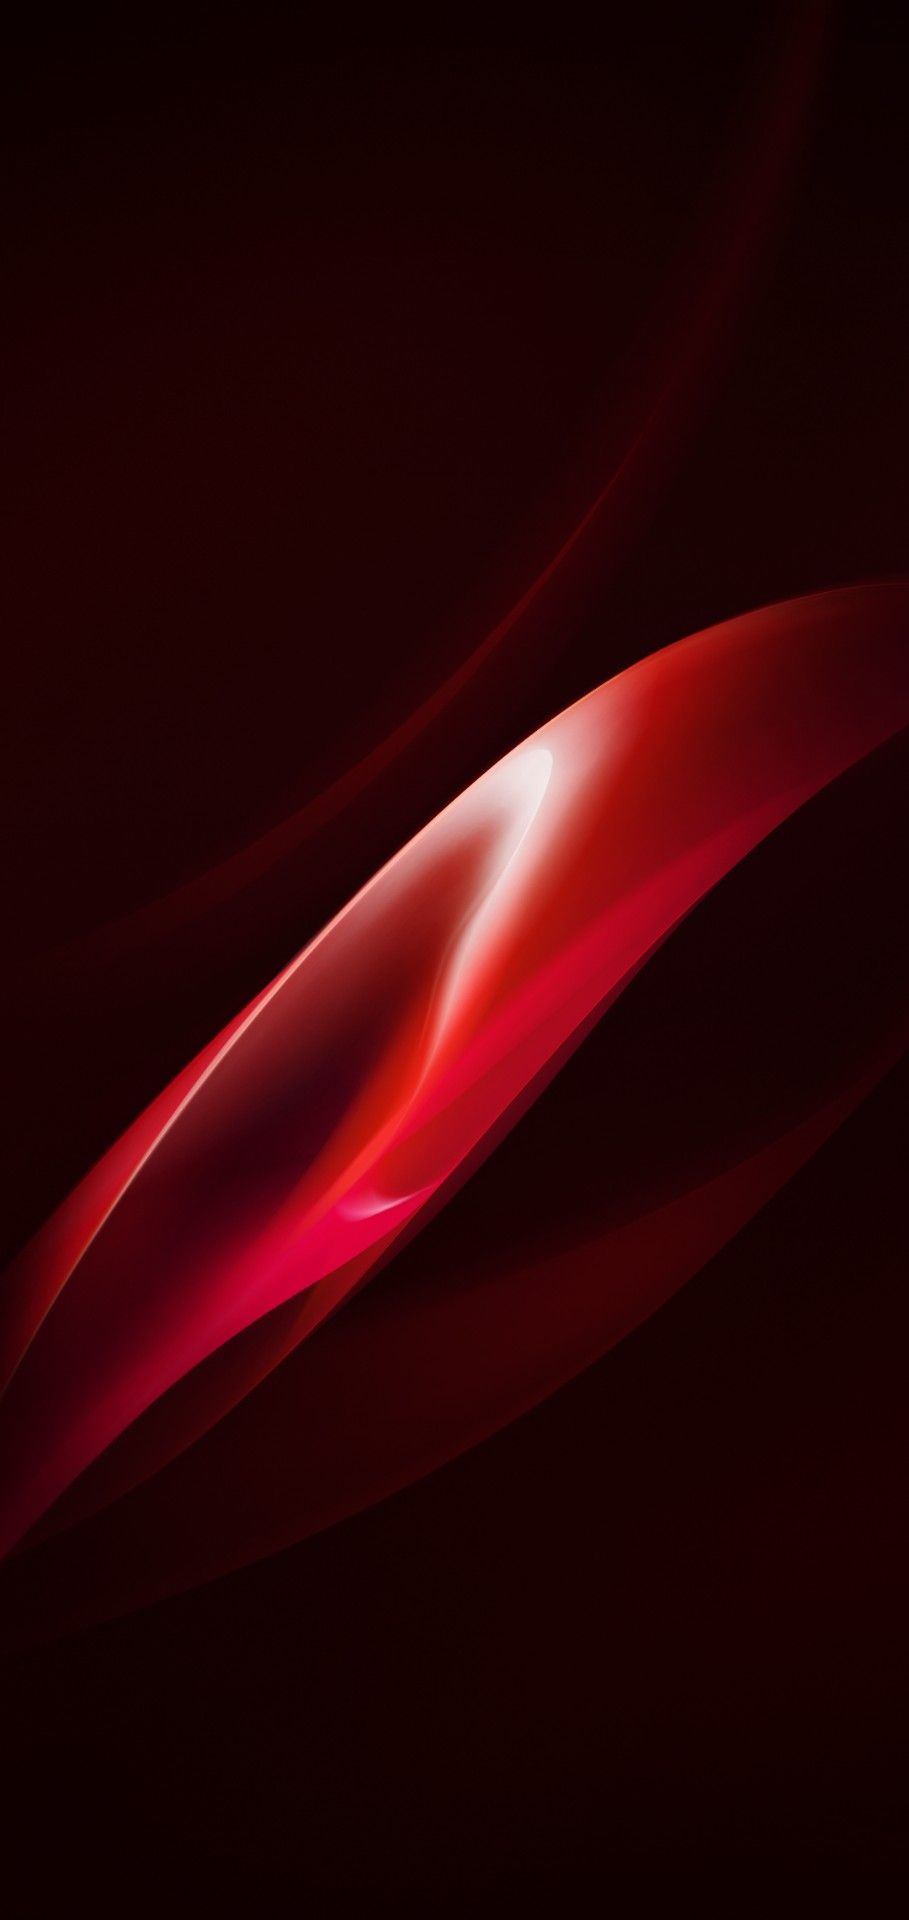 خلفيات اوبو بجودة عالية Oppo F7 Wallpapers Hd Tecnologis Wallpaper Samsung Wallpaper Ponsel Wallpaper Bunga